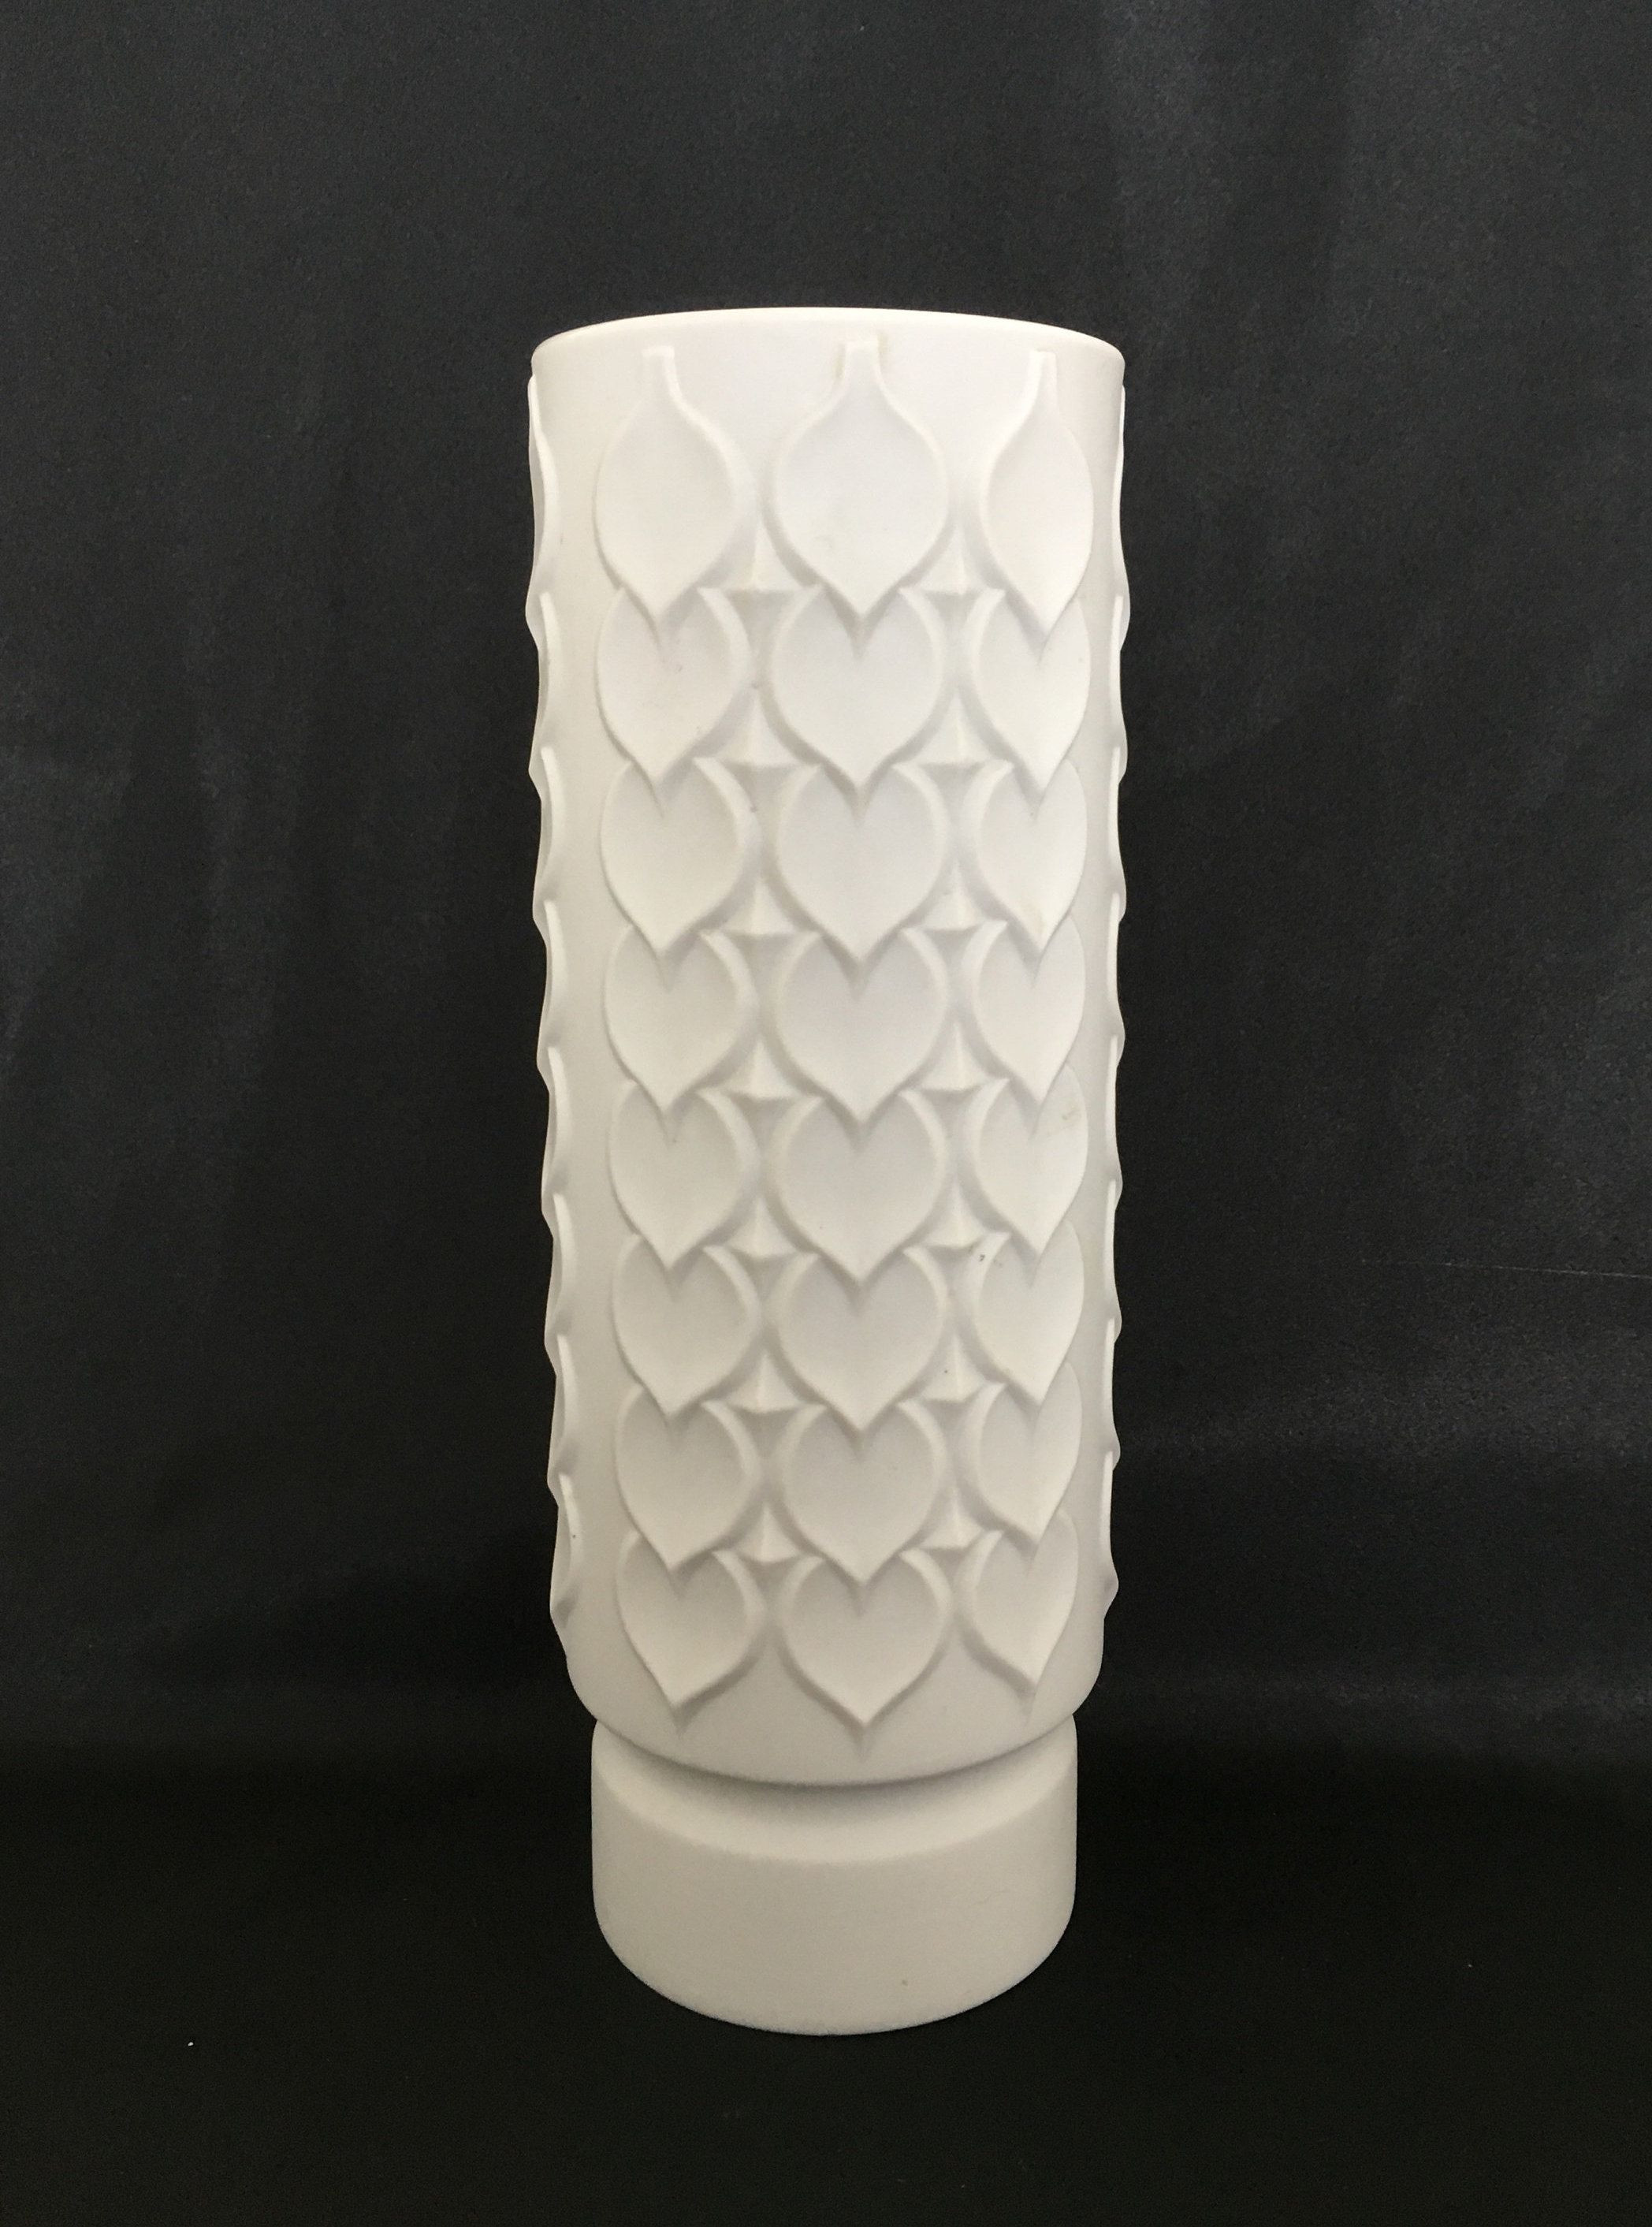 kaiser germany vase of kaiser white op art bisque vase with hearts leaves decor west with kaiser white op art bisque vase with hearts leaves decor by woodstockstudio on etsy